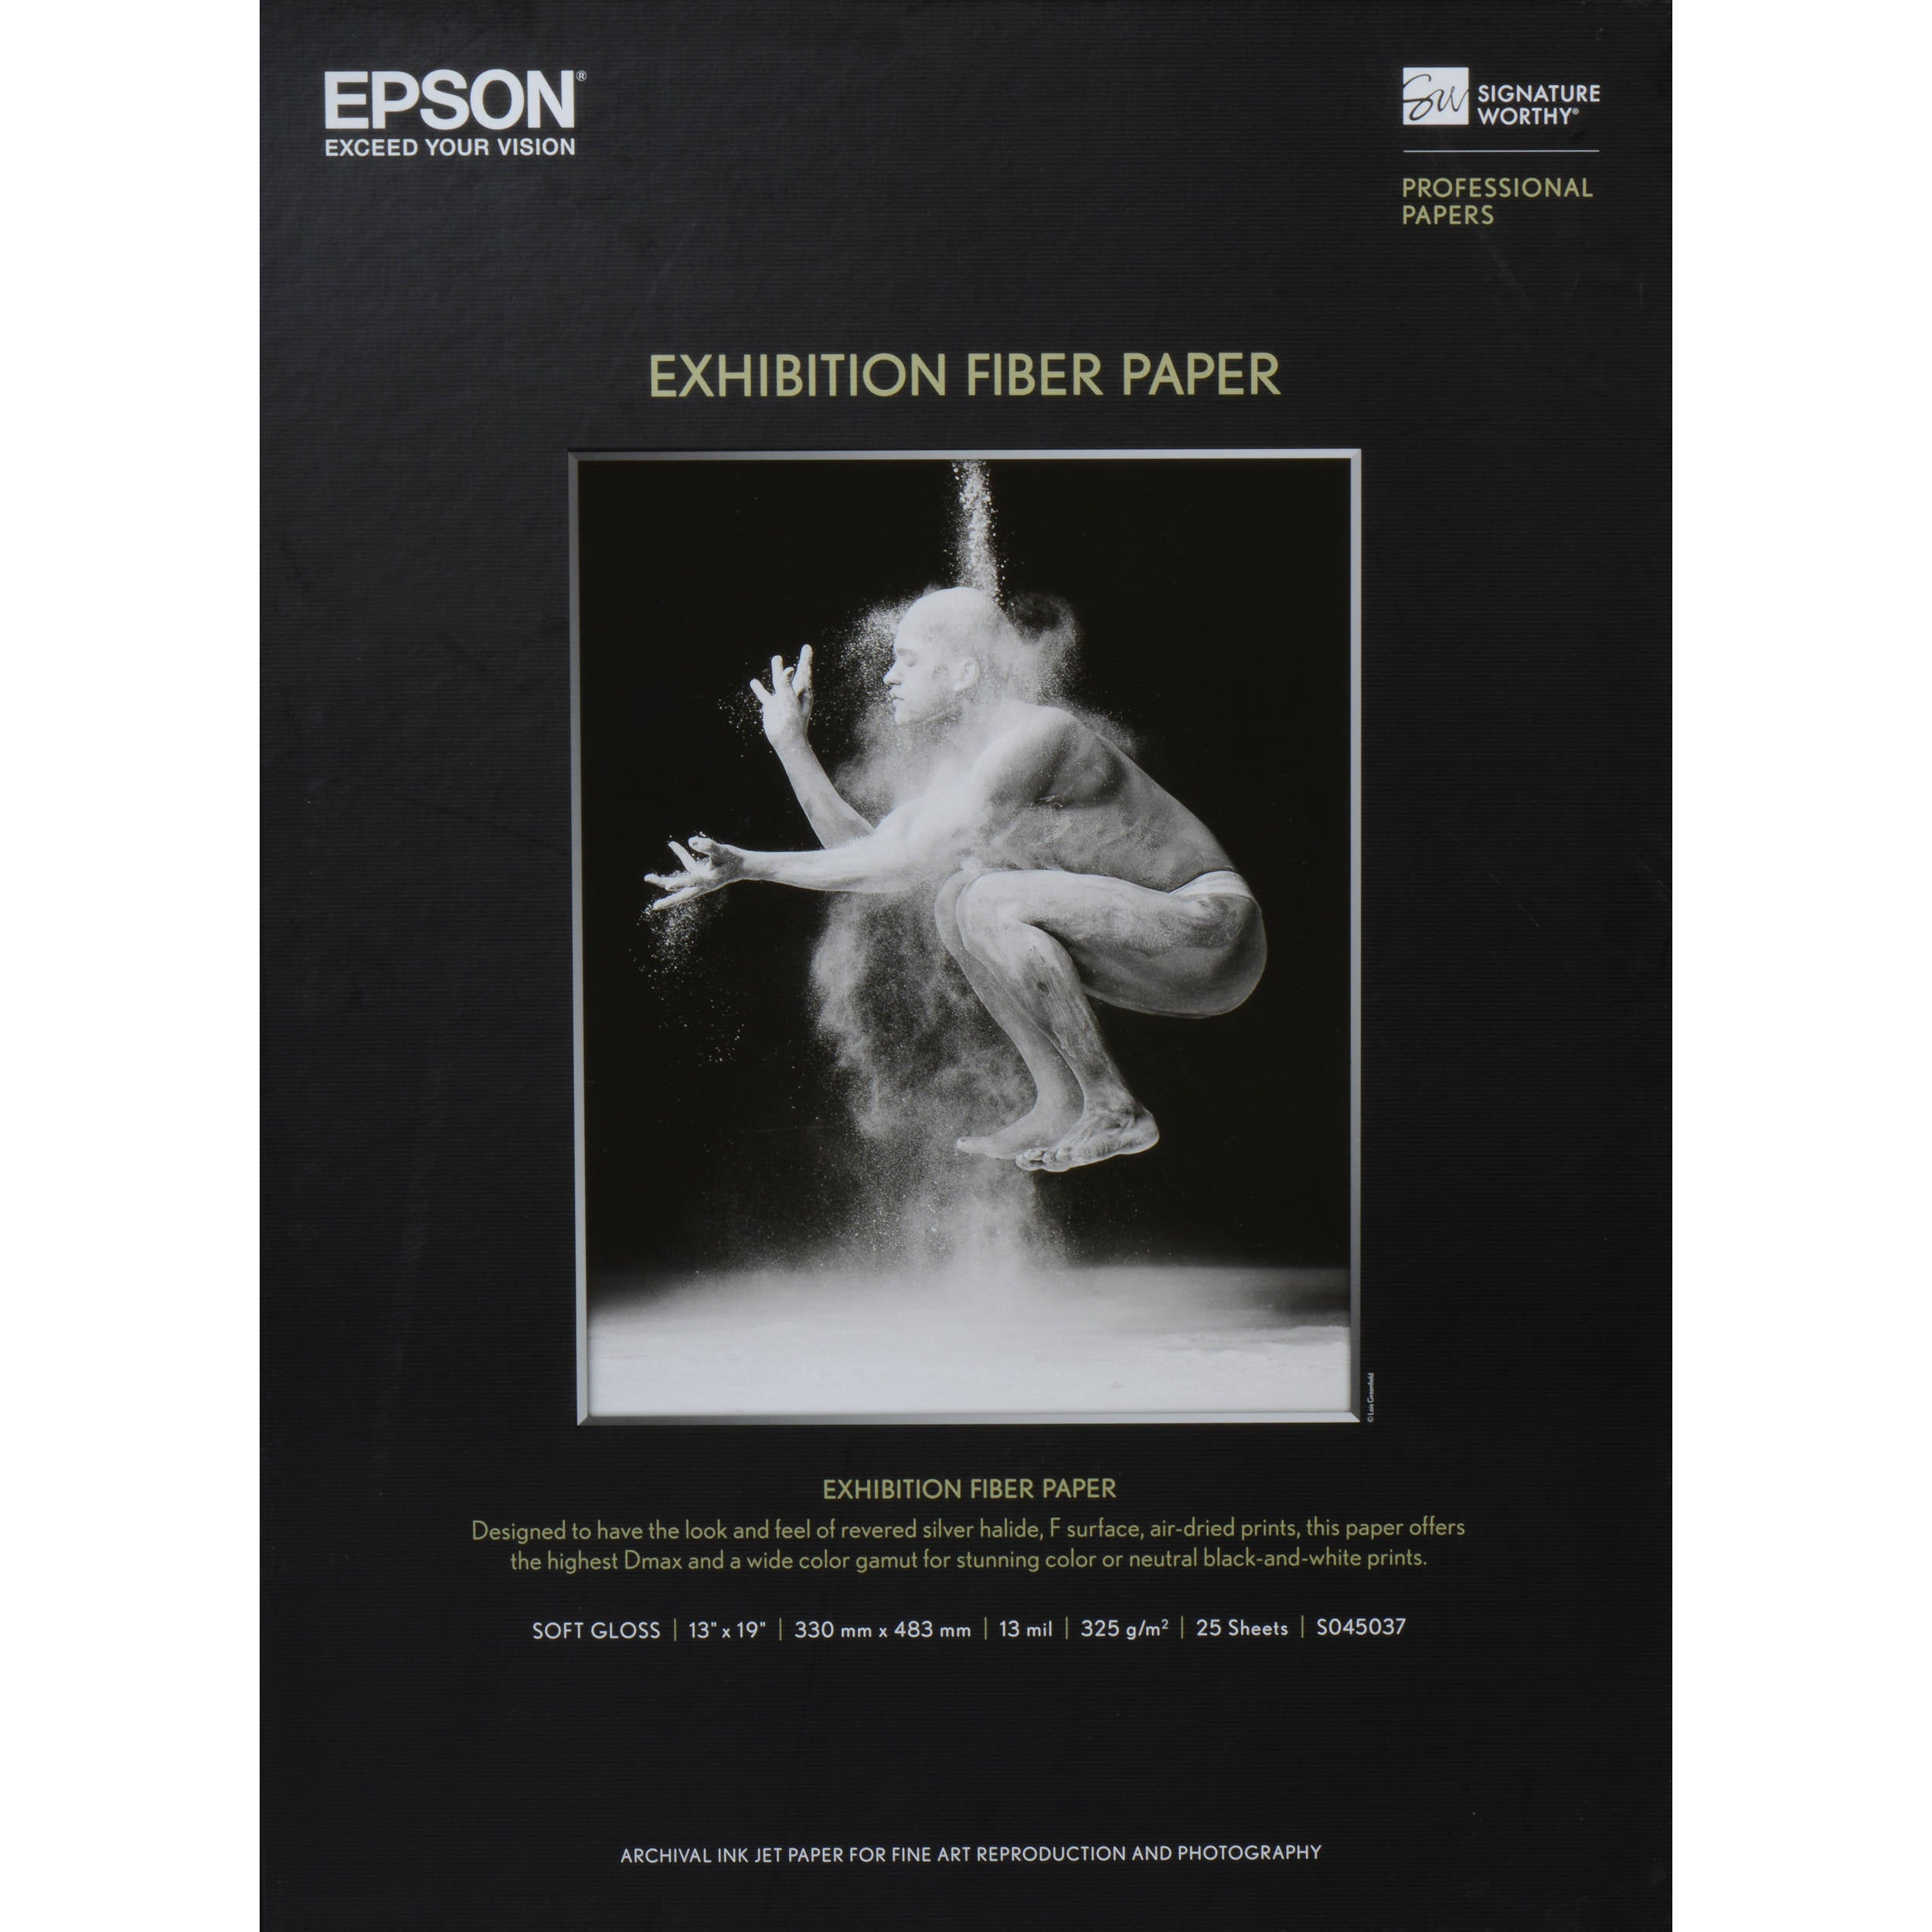 "Epson Exhibition Fiber Paper | 13 x 19"" - 25 Sheets"